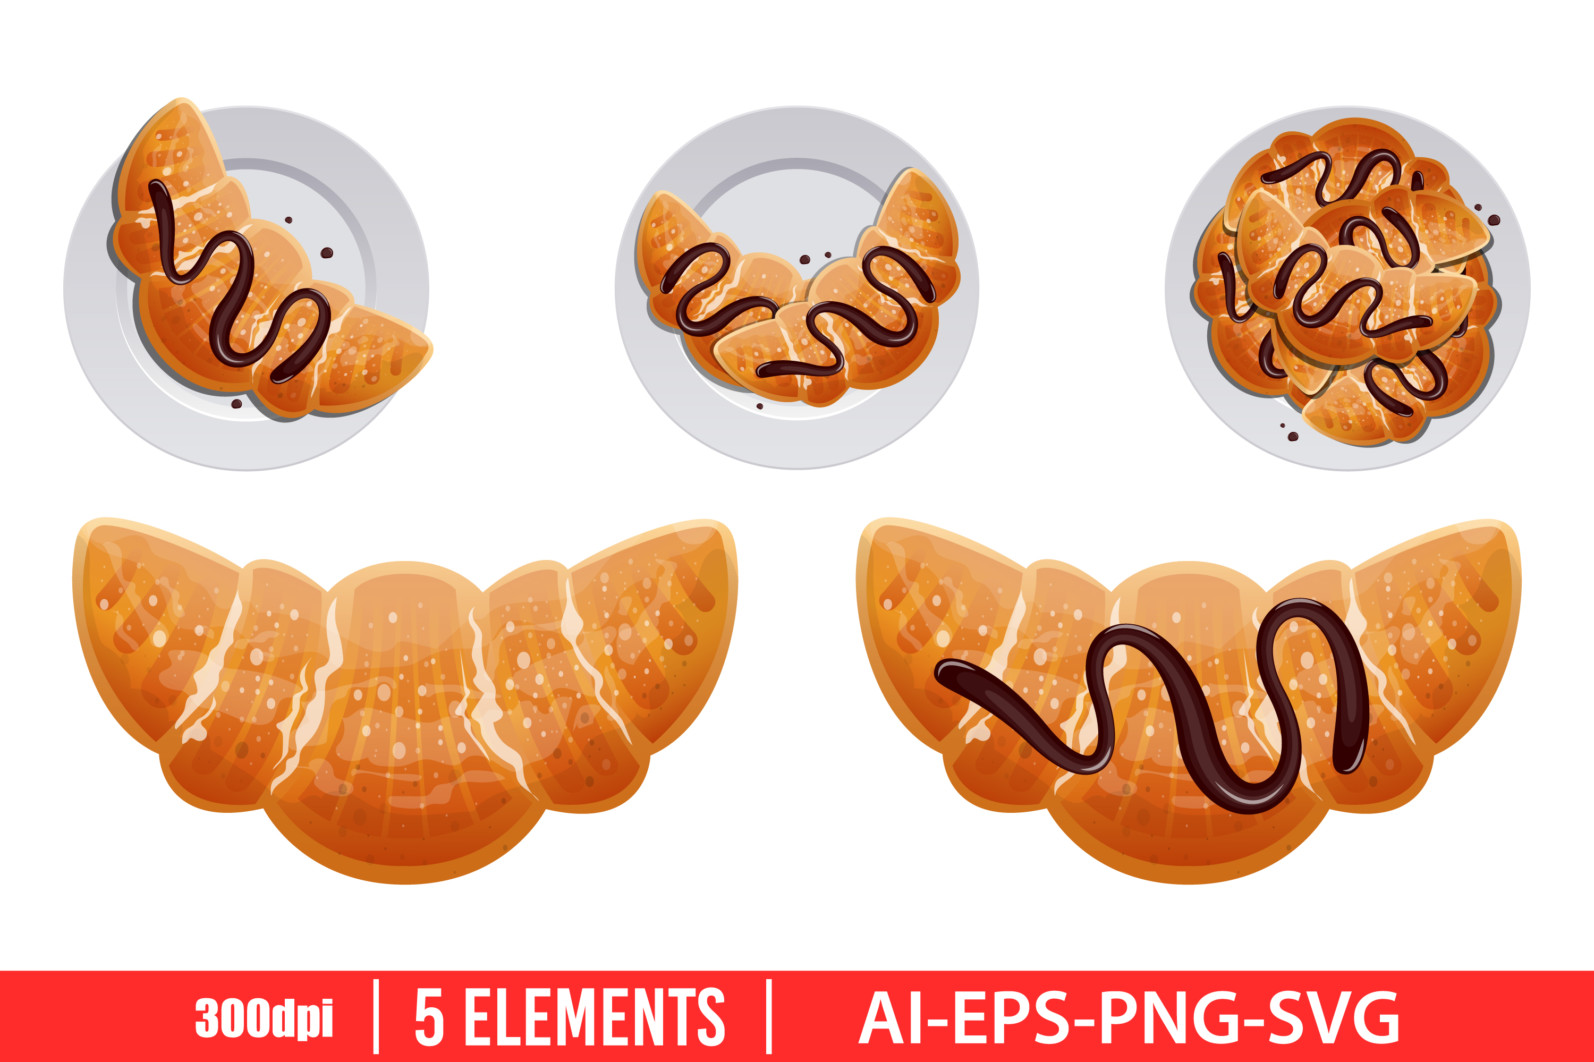 Traditional french croissant clipart vector design illustration. Vector Clipart Print - CROISSANT scaled -